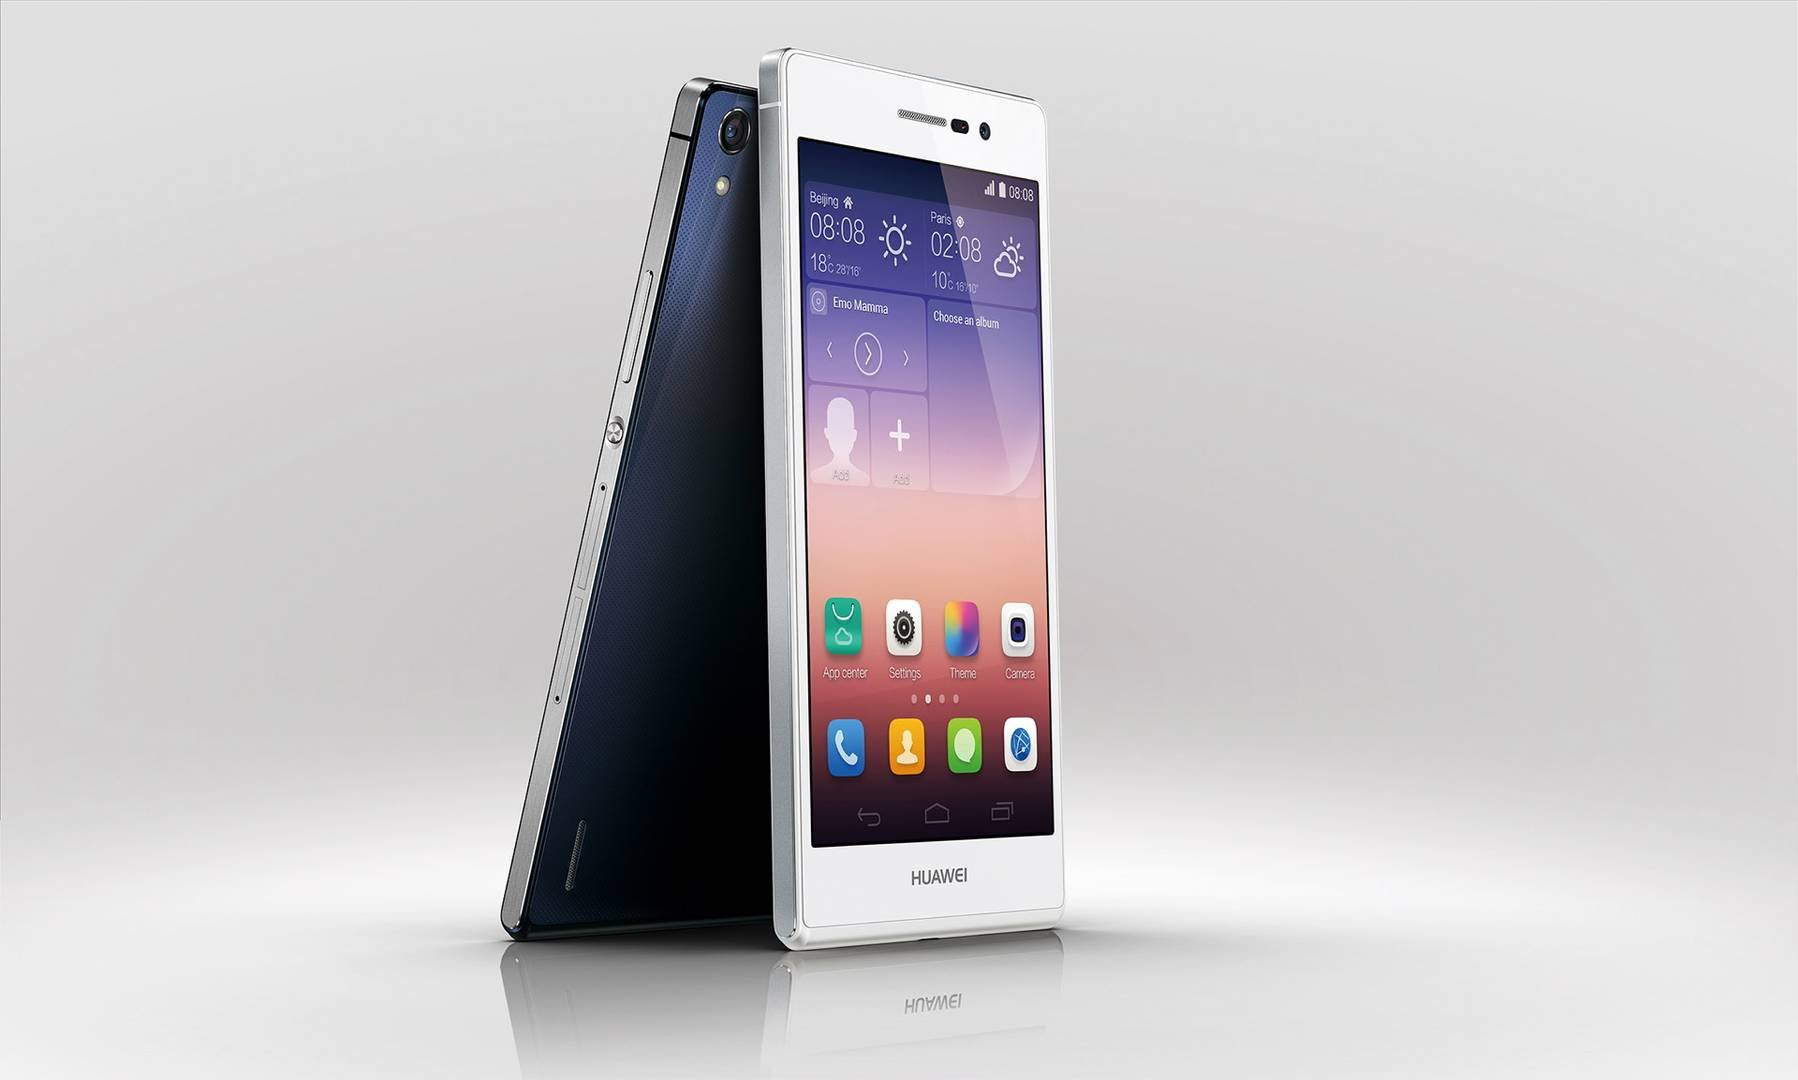 huawei p8 specs review release date phonesdata. Black Bedroom Furniture Sets. Home Design Ideas